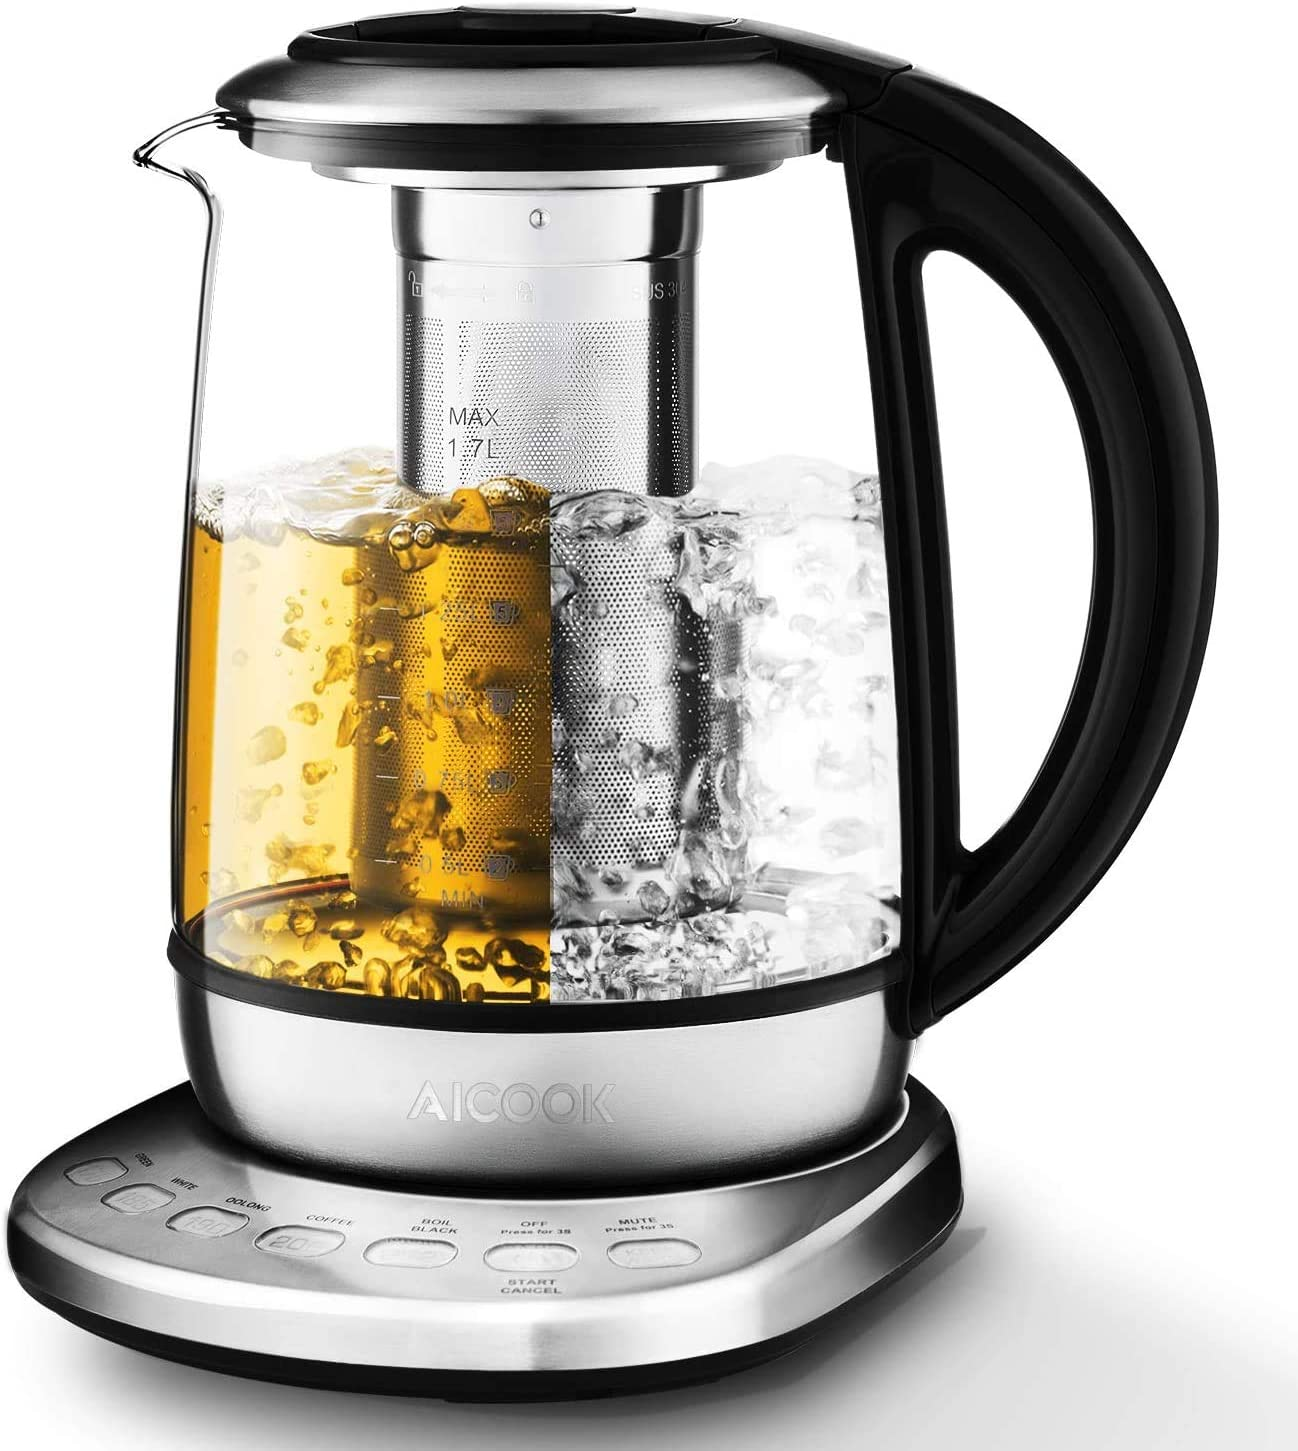 Aicook Electric Kettle 1.7L Glass Tea Kettle with 5 Variable Presets, One Touch Tea Maker, 100 Stainless Steel Inner Lid, Tea Infuser Bottom, Auto Shut off Boil Dry Protection, BPA free